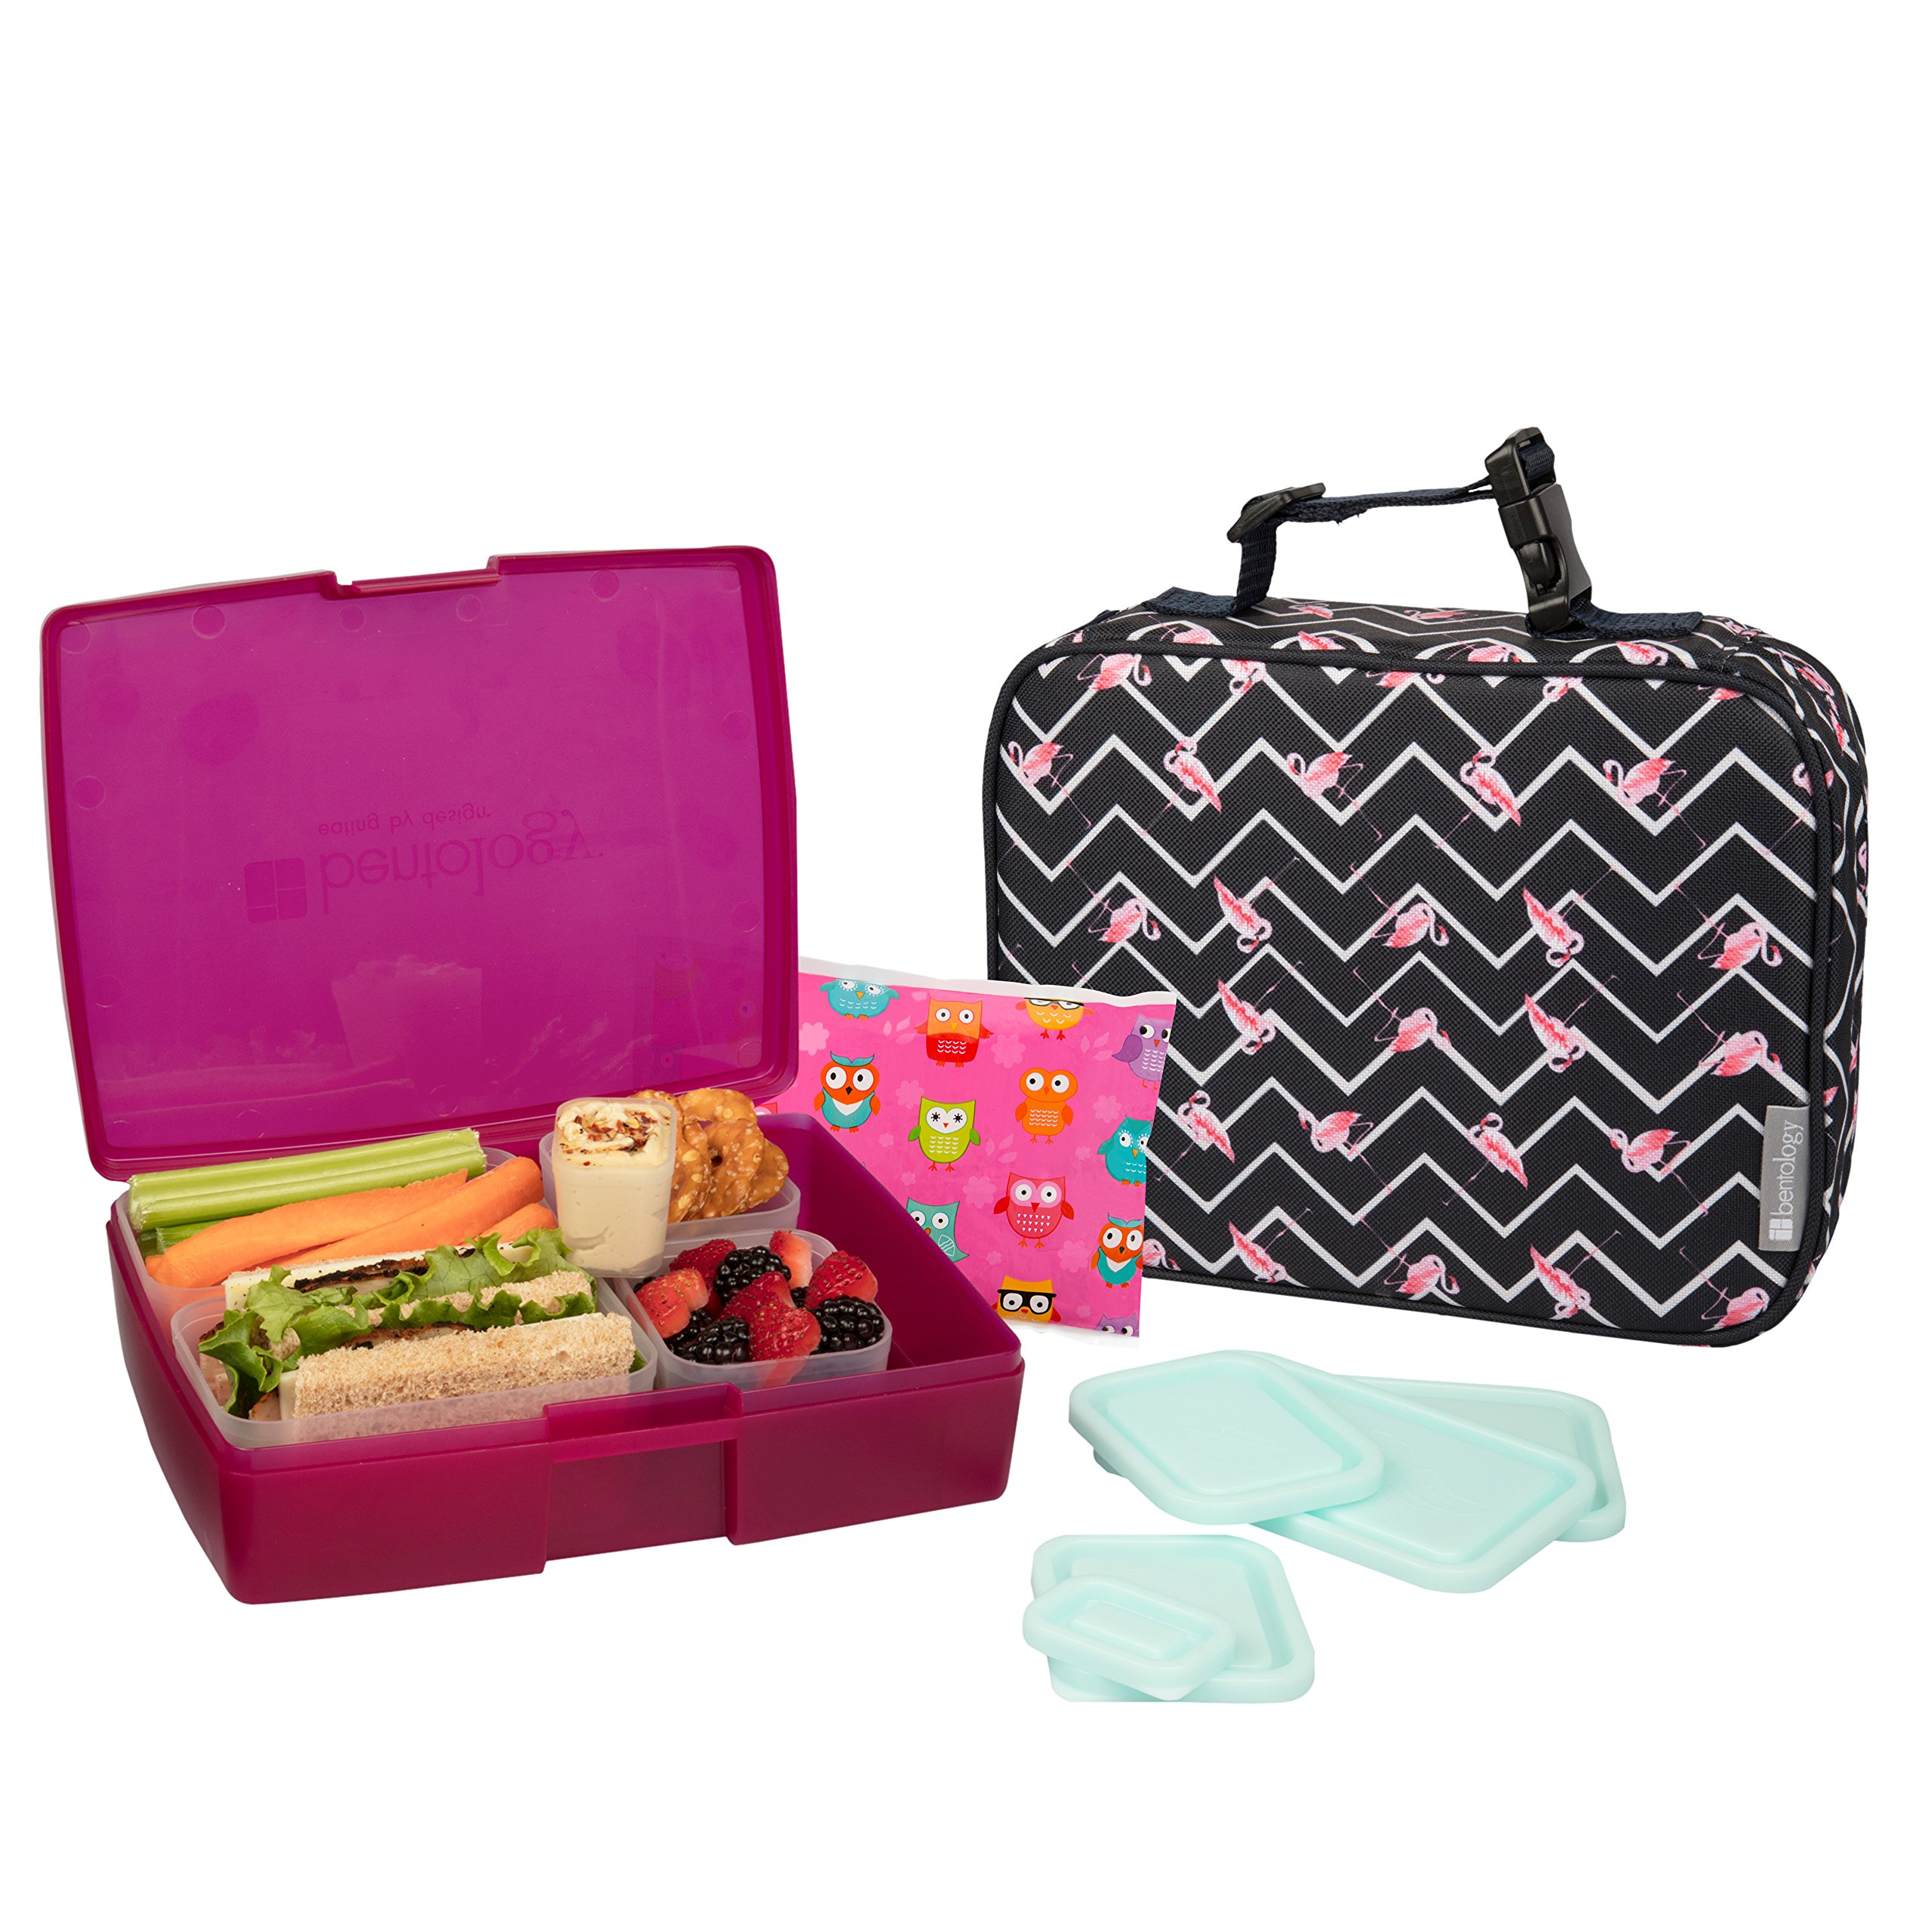 Bentology Lunch Bag and Box Set for Kids - Girls Insulated Lunchbox Tote, Bento Box, 5 Containers and Ice Pack - 9 Pieces - Flamingo